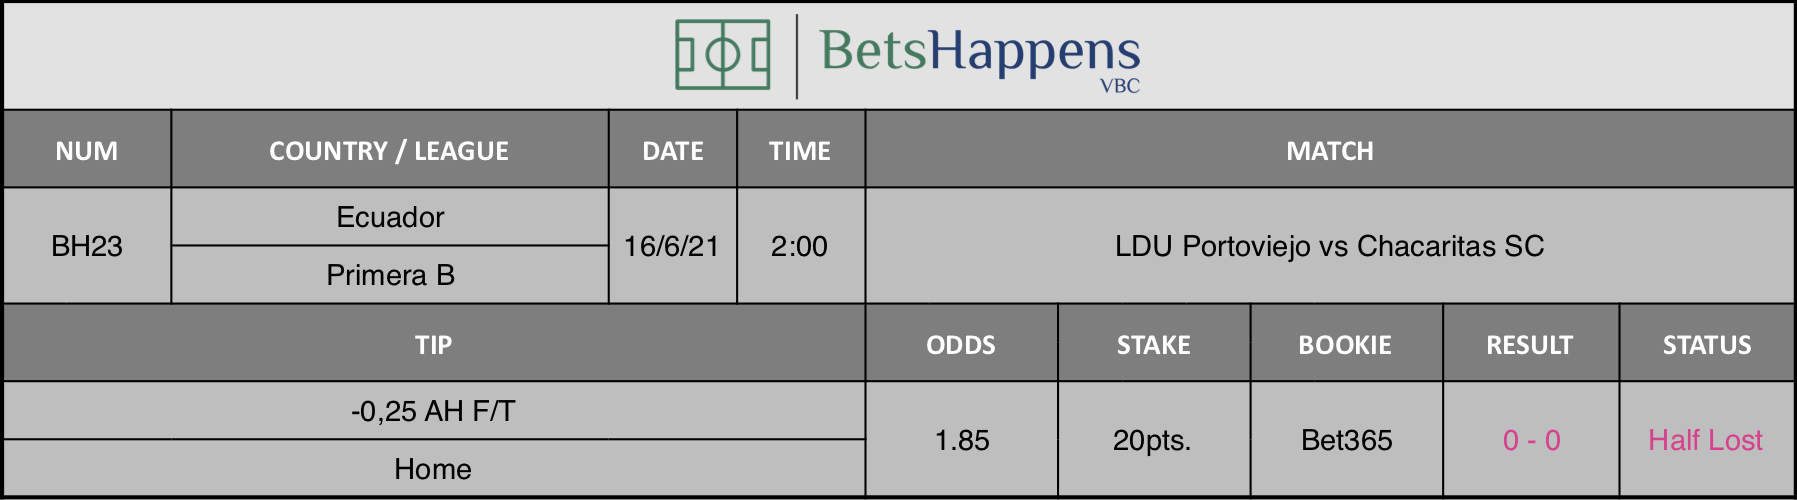 Results of our tip for the LDU Portoviejo vs Chacaritas SC Match -0,25 AH F/T Home is recommended.